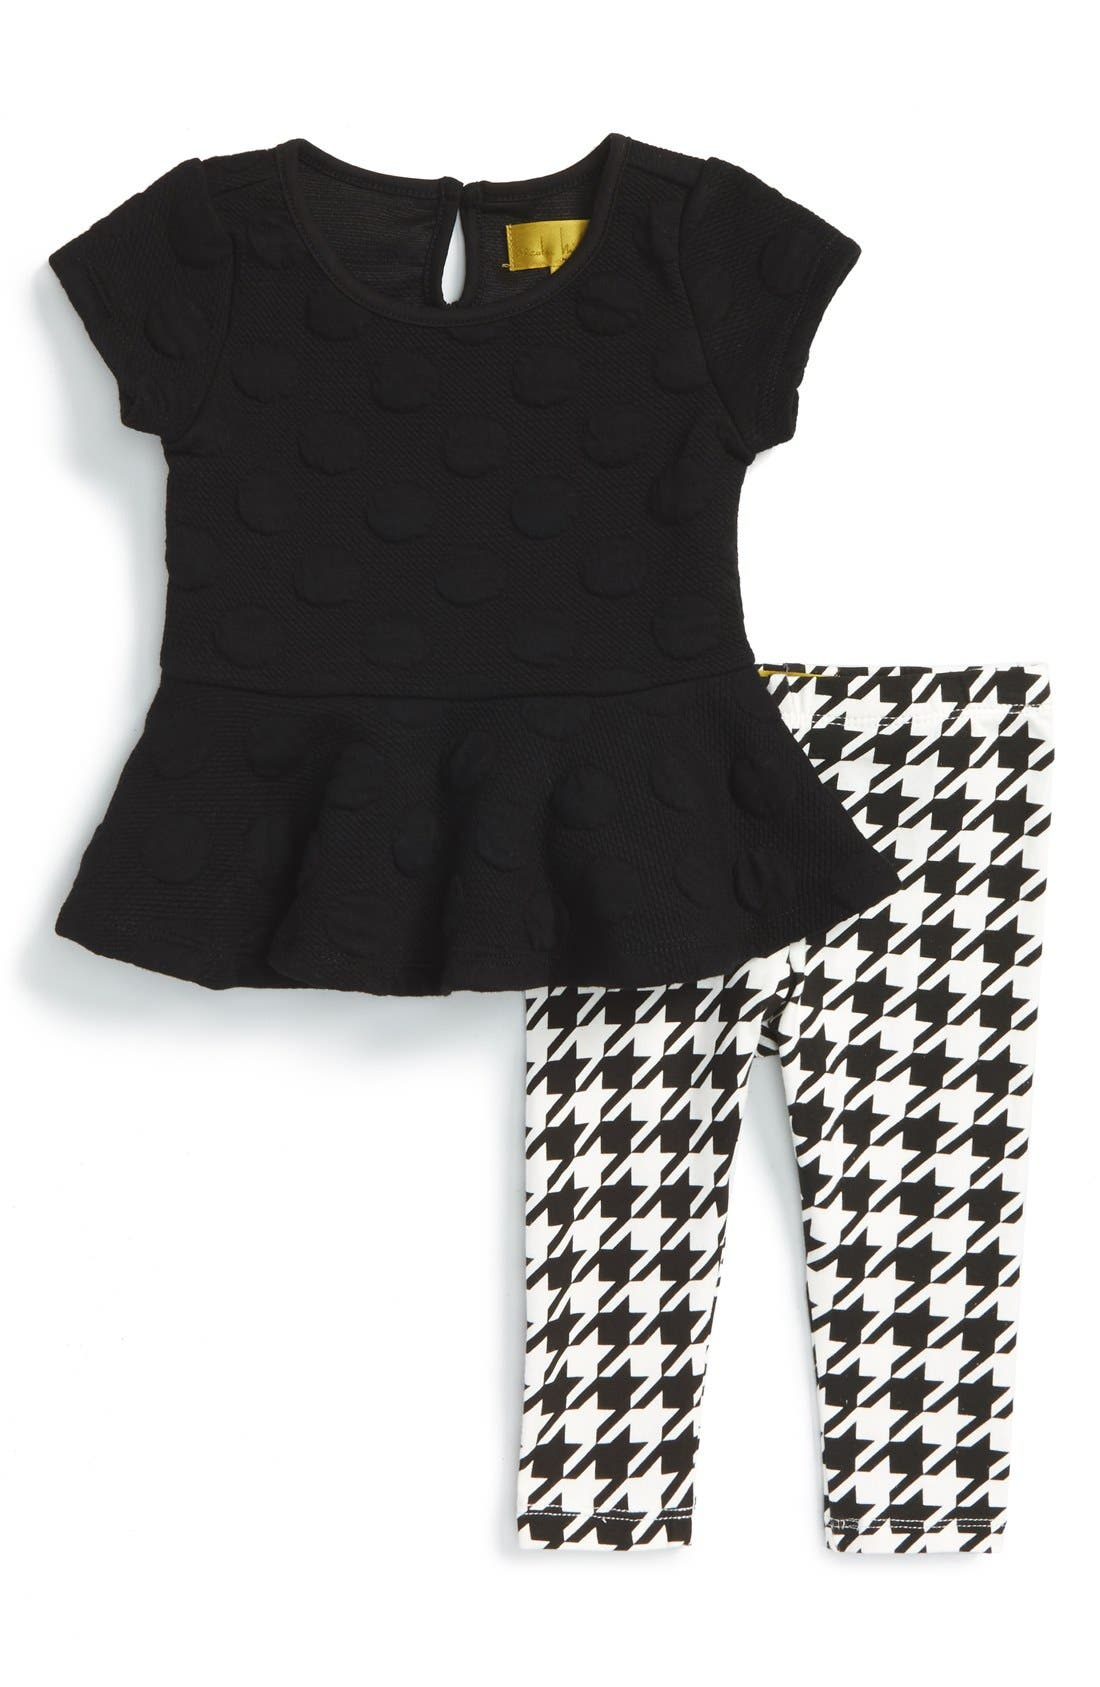 Alternate Image 1 Selected - Nicole Miller Peplum Tunic and Print Leggings (Baby Girls)